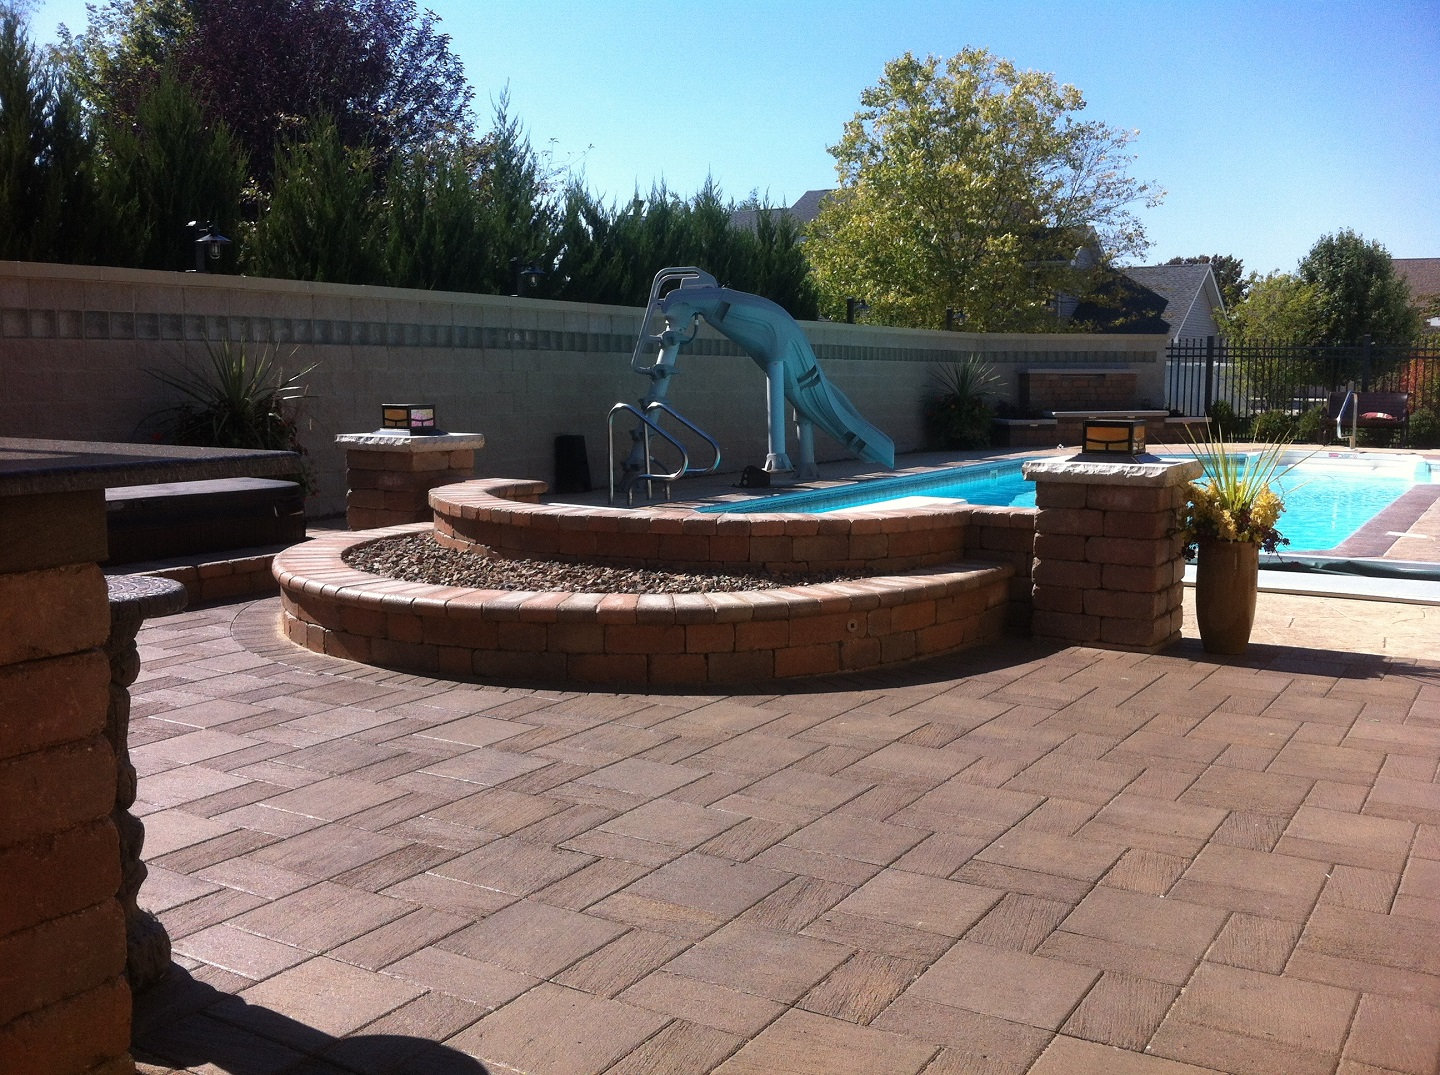 Pool deck with water features in Peotone, IL